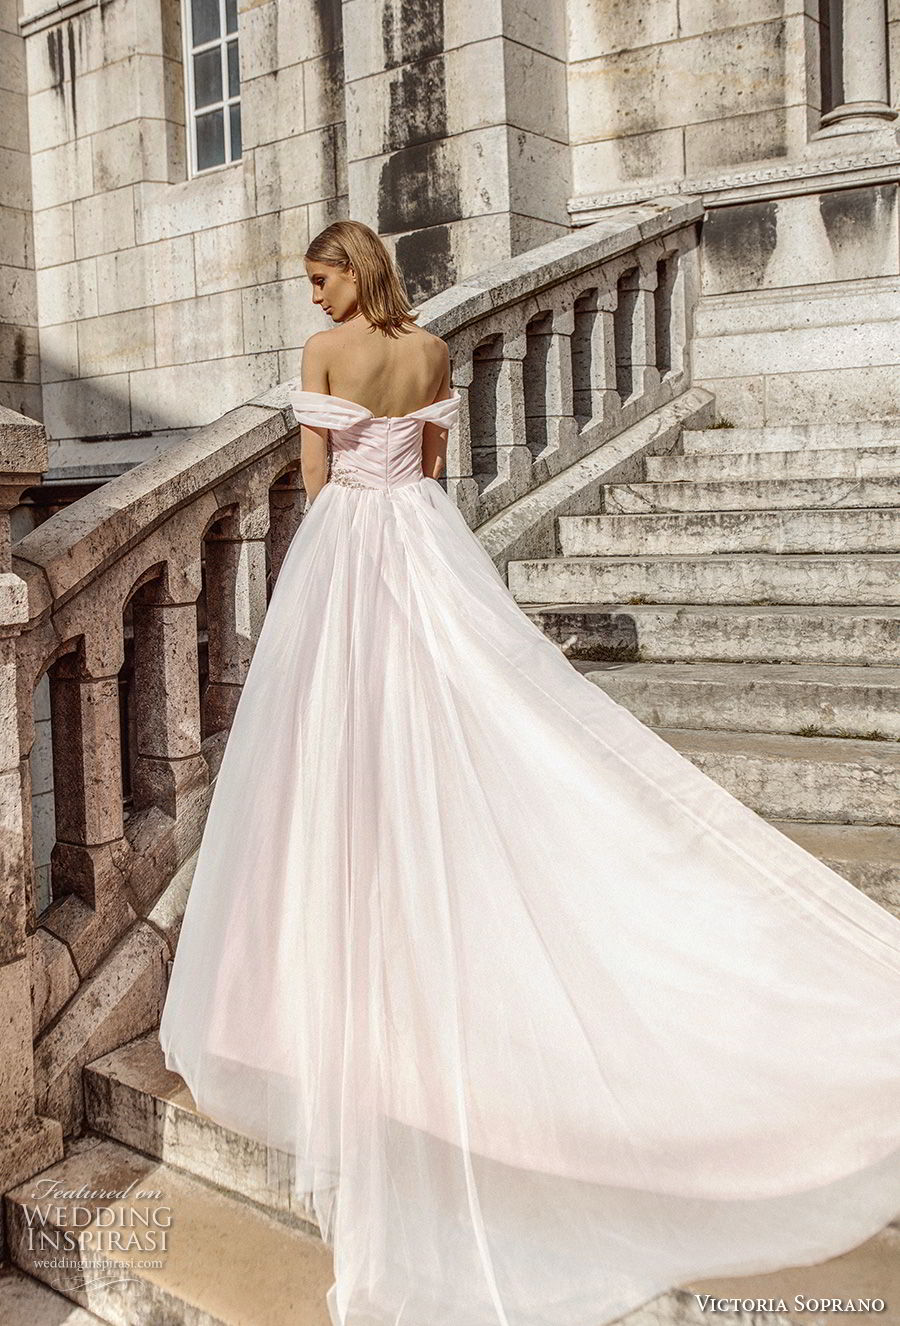 victoria soprano 2019 bridal off the shoulder sweetheart neckline ruched wrap over bodice romantic blush ball gown wedding dress chapel train (5) bv